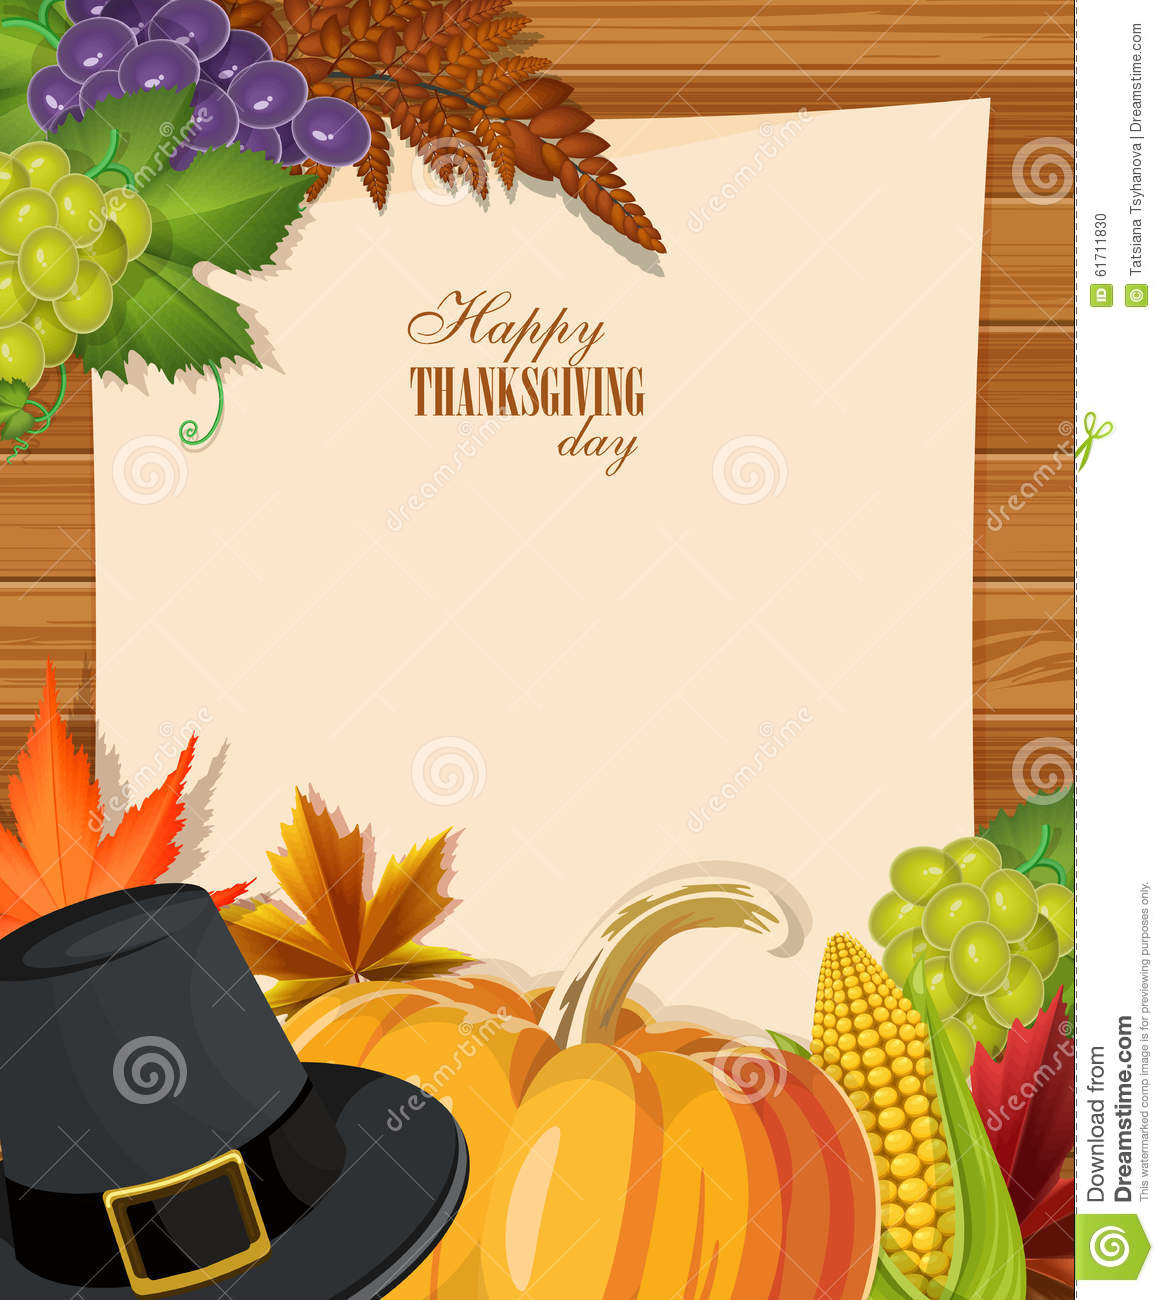 happy thanksgiving day greeting card with pumpkins